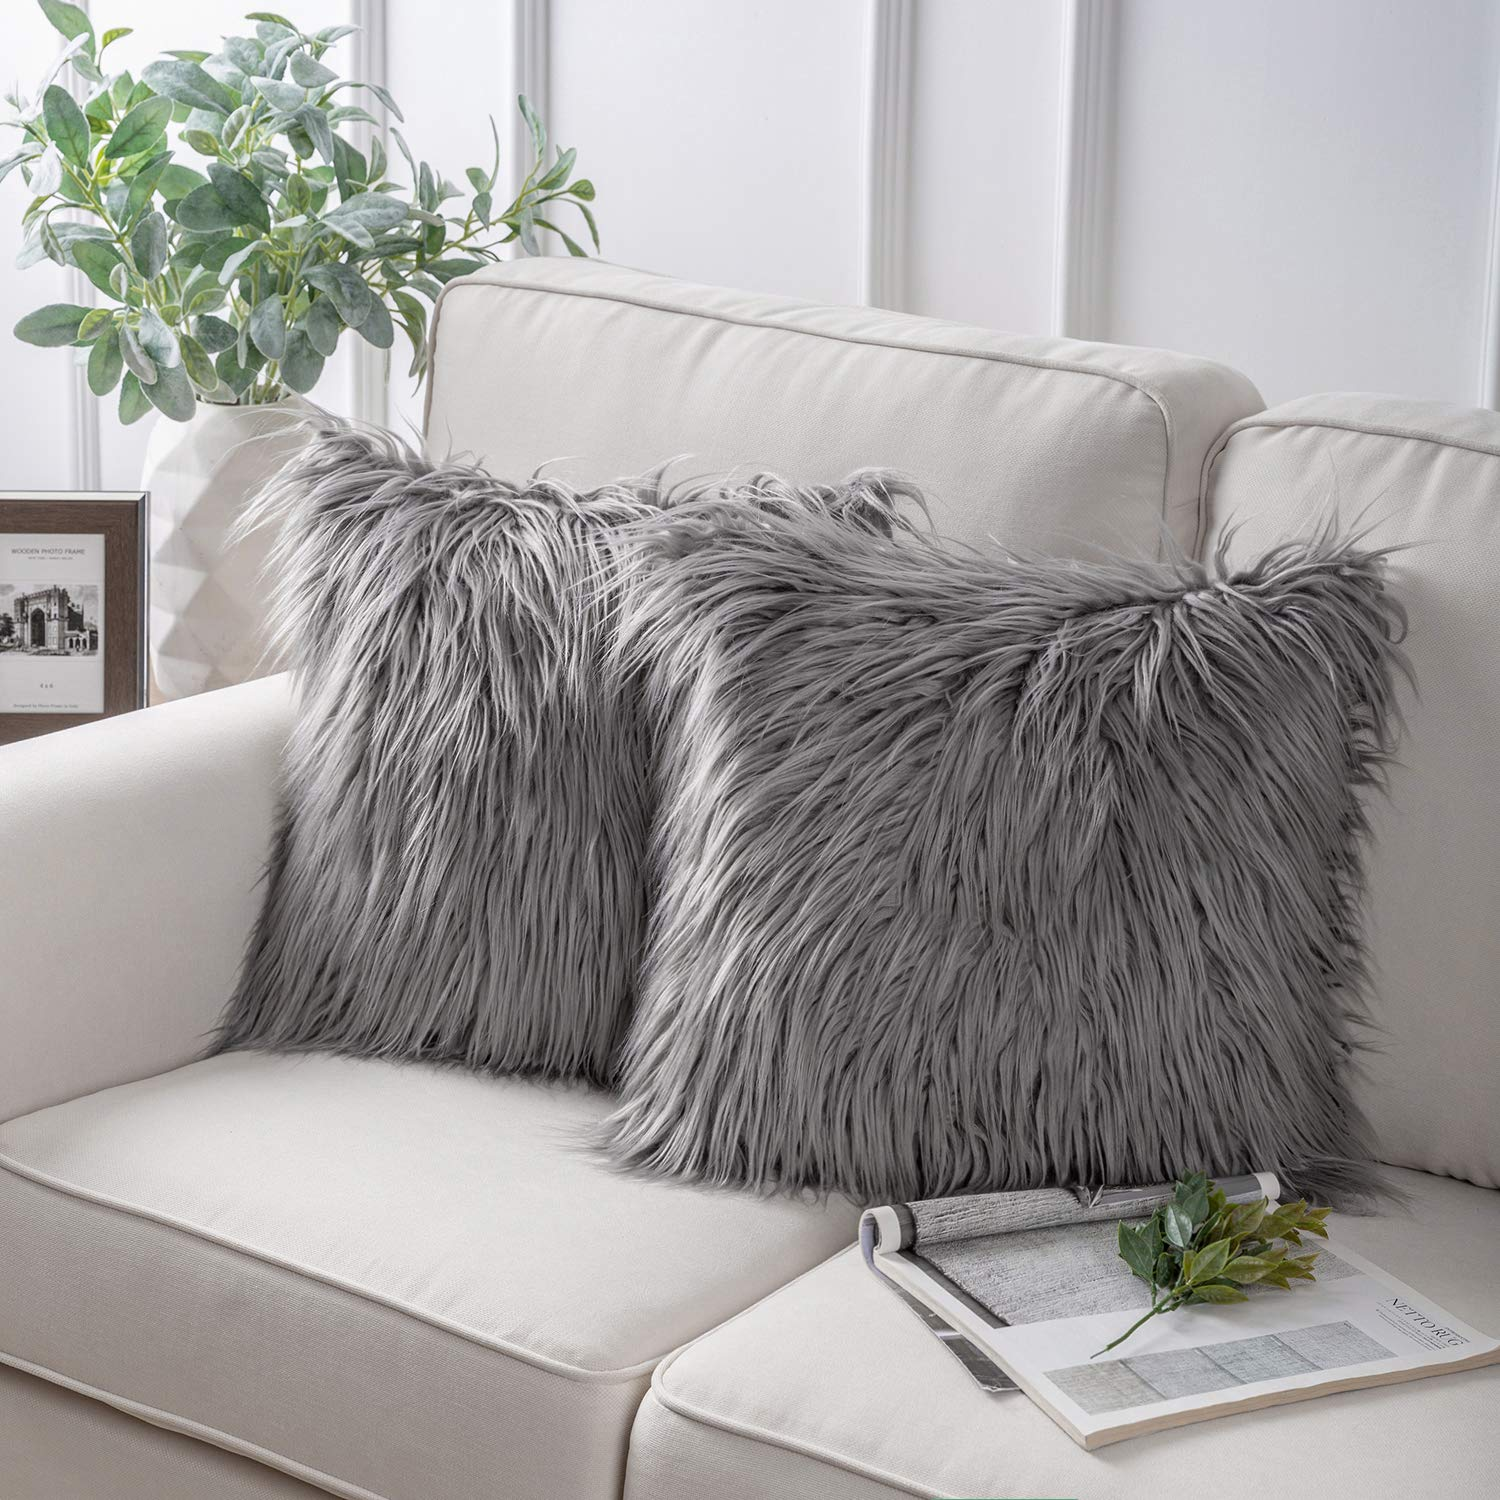 Phantoscope Pack of 2 Luxury Series Throw Pillow Covers Faux Fur Mongolian Style Plush Cushion Case for Couch Bed and Chair,Grey 18 x 18 inches 45 x 45 cm